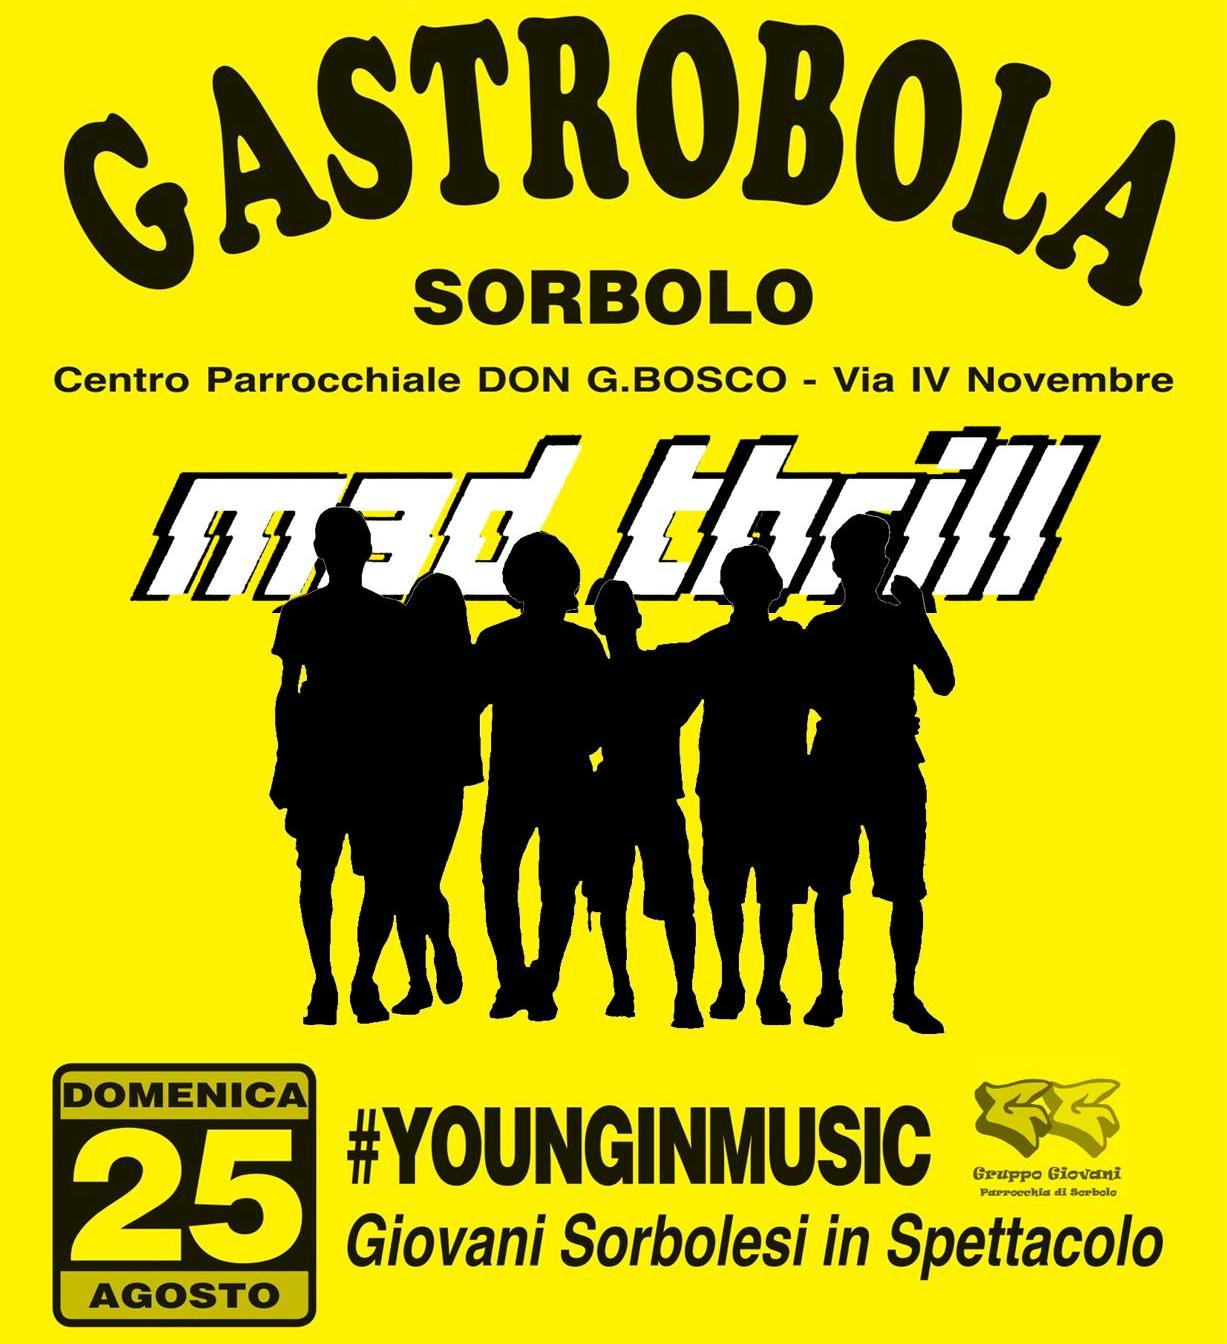 Live @ Young in Music, Gastrobola 2019 - domenica 25 agosto 2019 ore 20.00